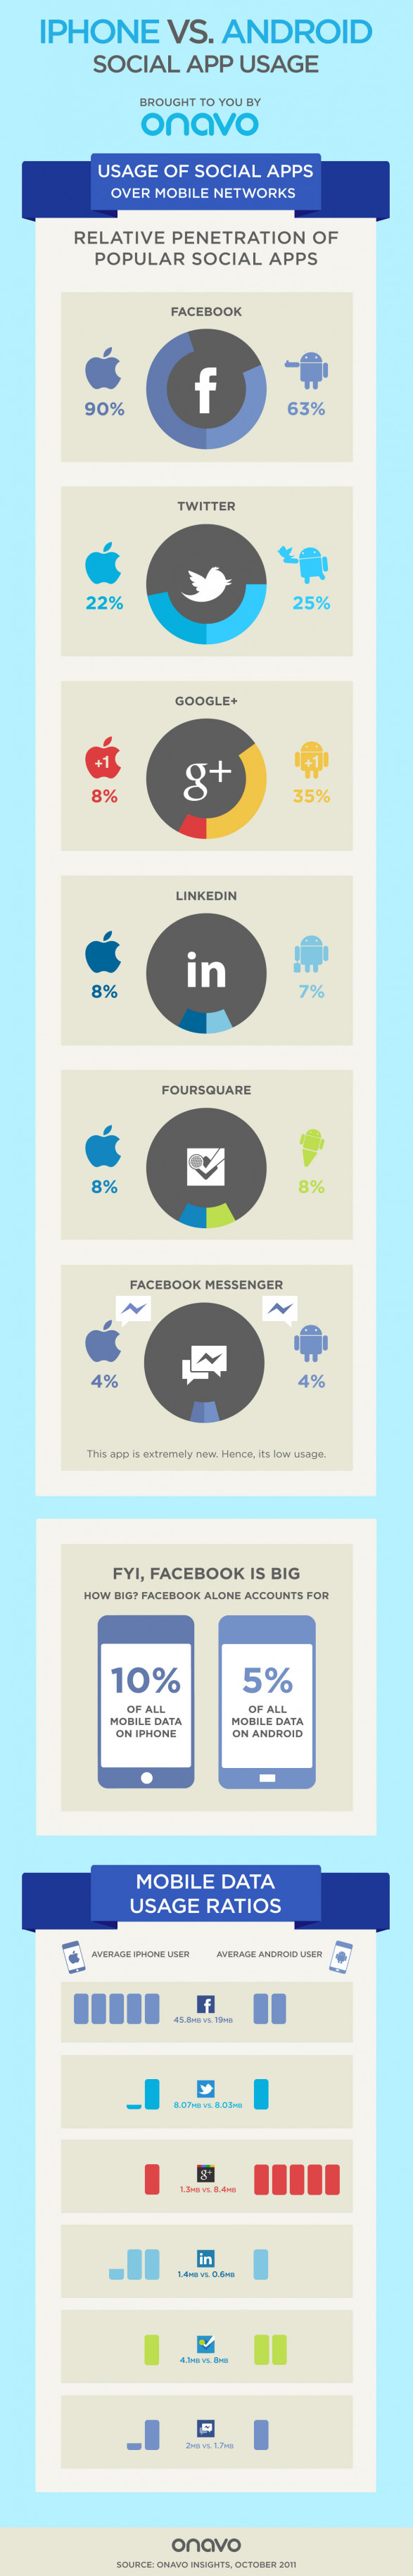 iPhone vs. Android: The Social App Activities That Set Users Apart